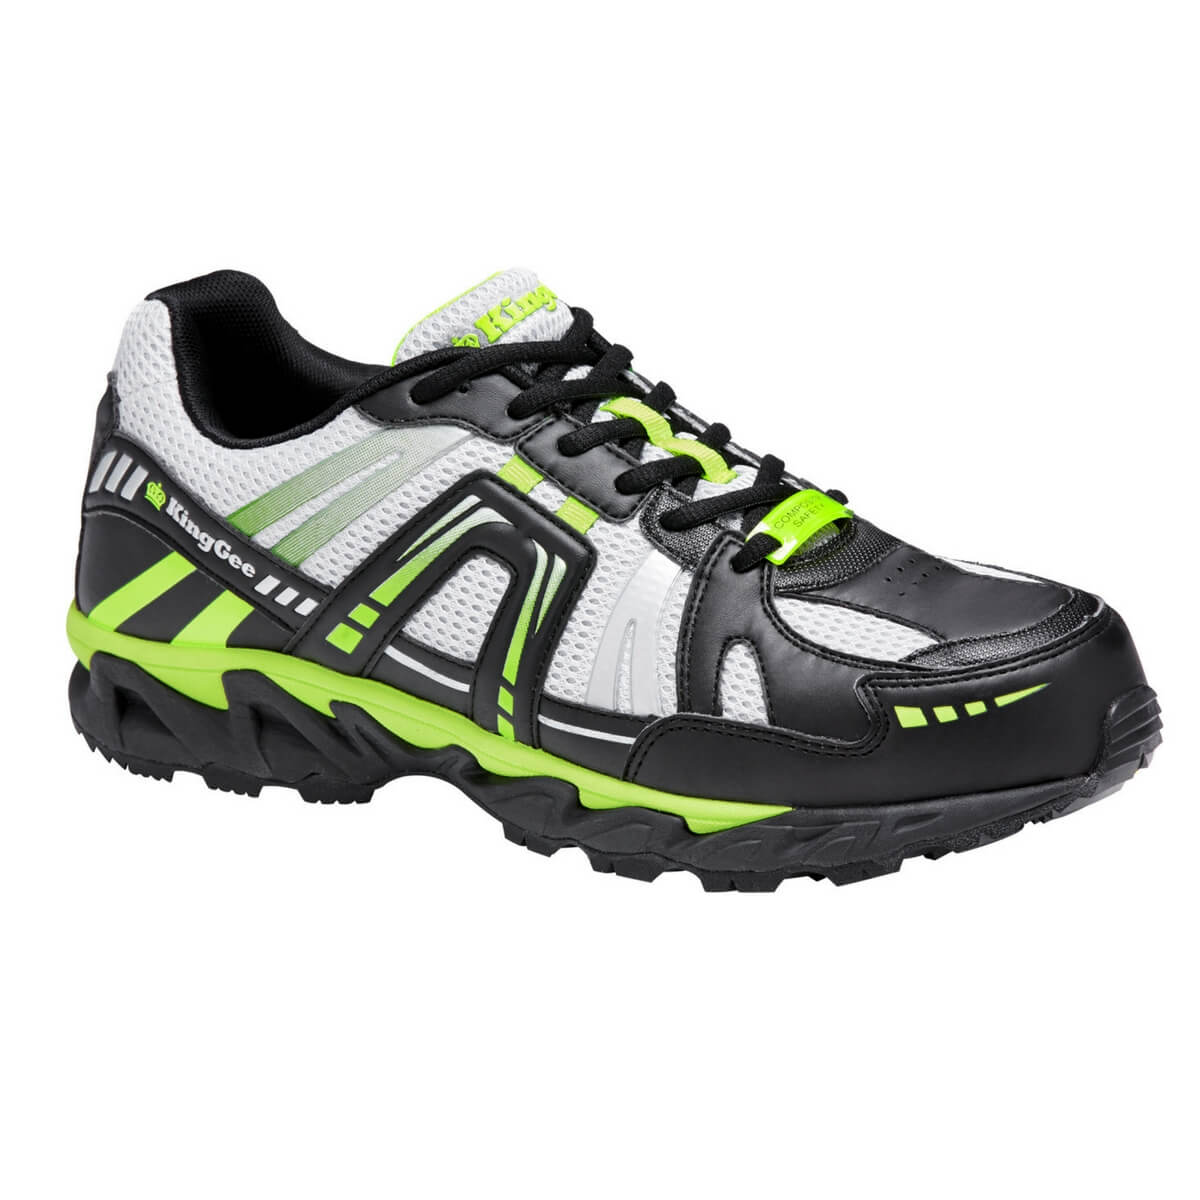 Kinggee K26400 Comp Tec G10 Safety Shoe Badger Australia